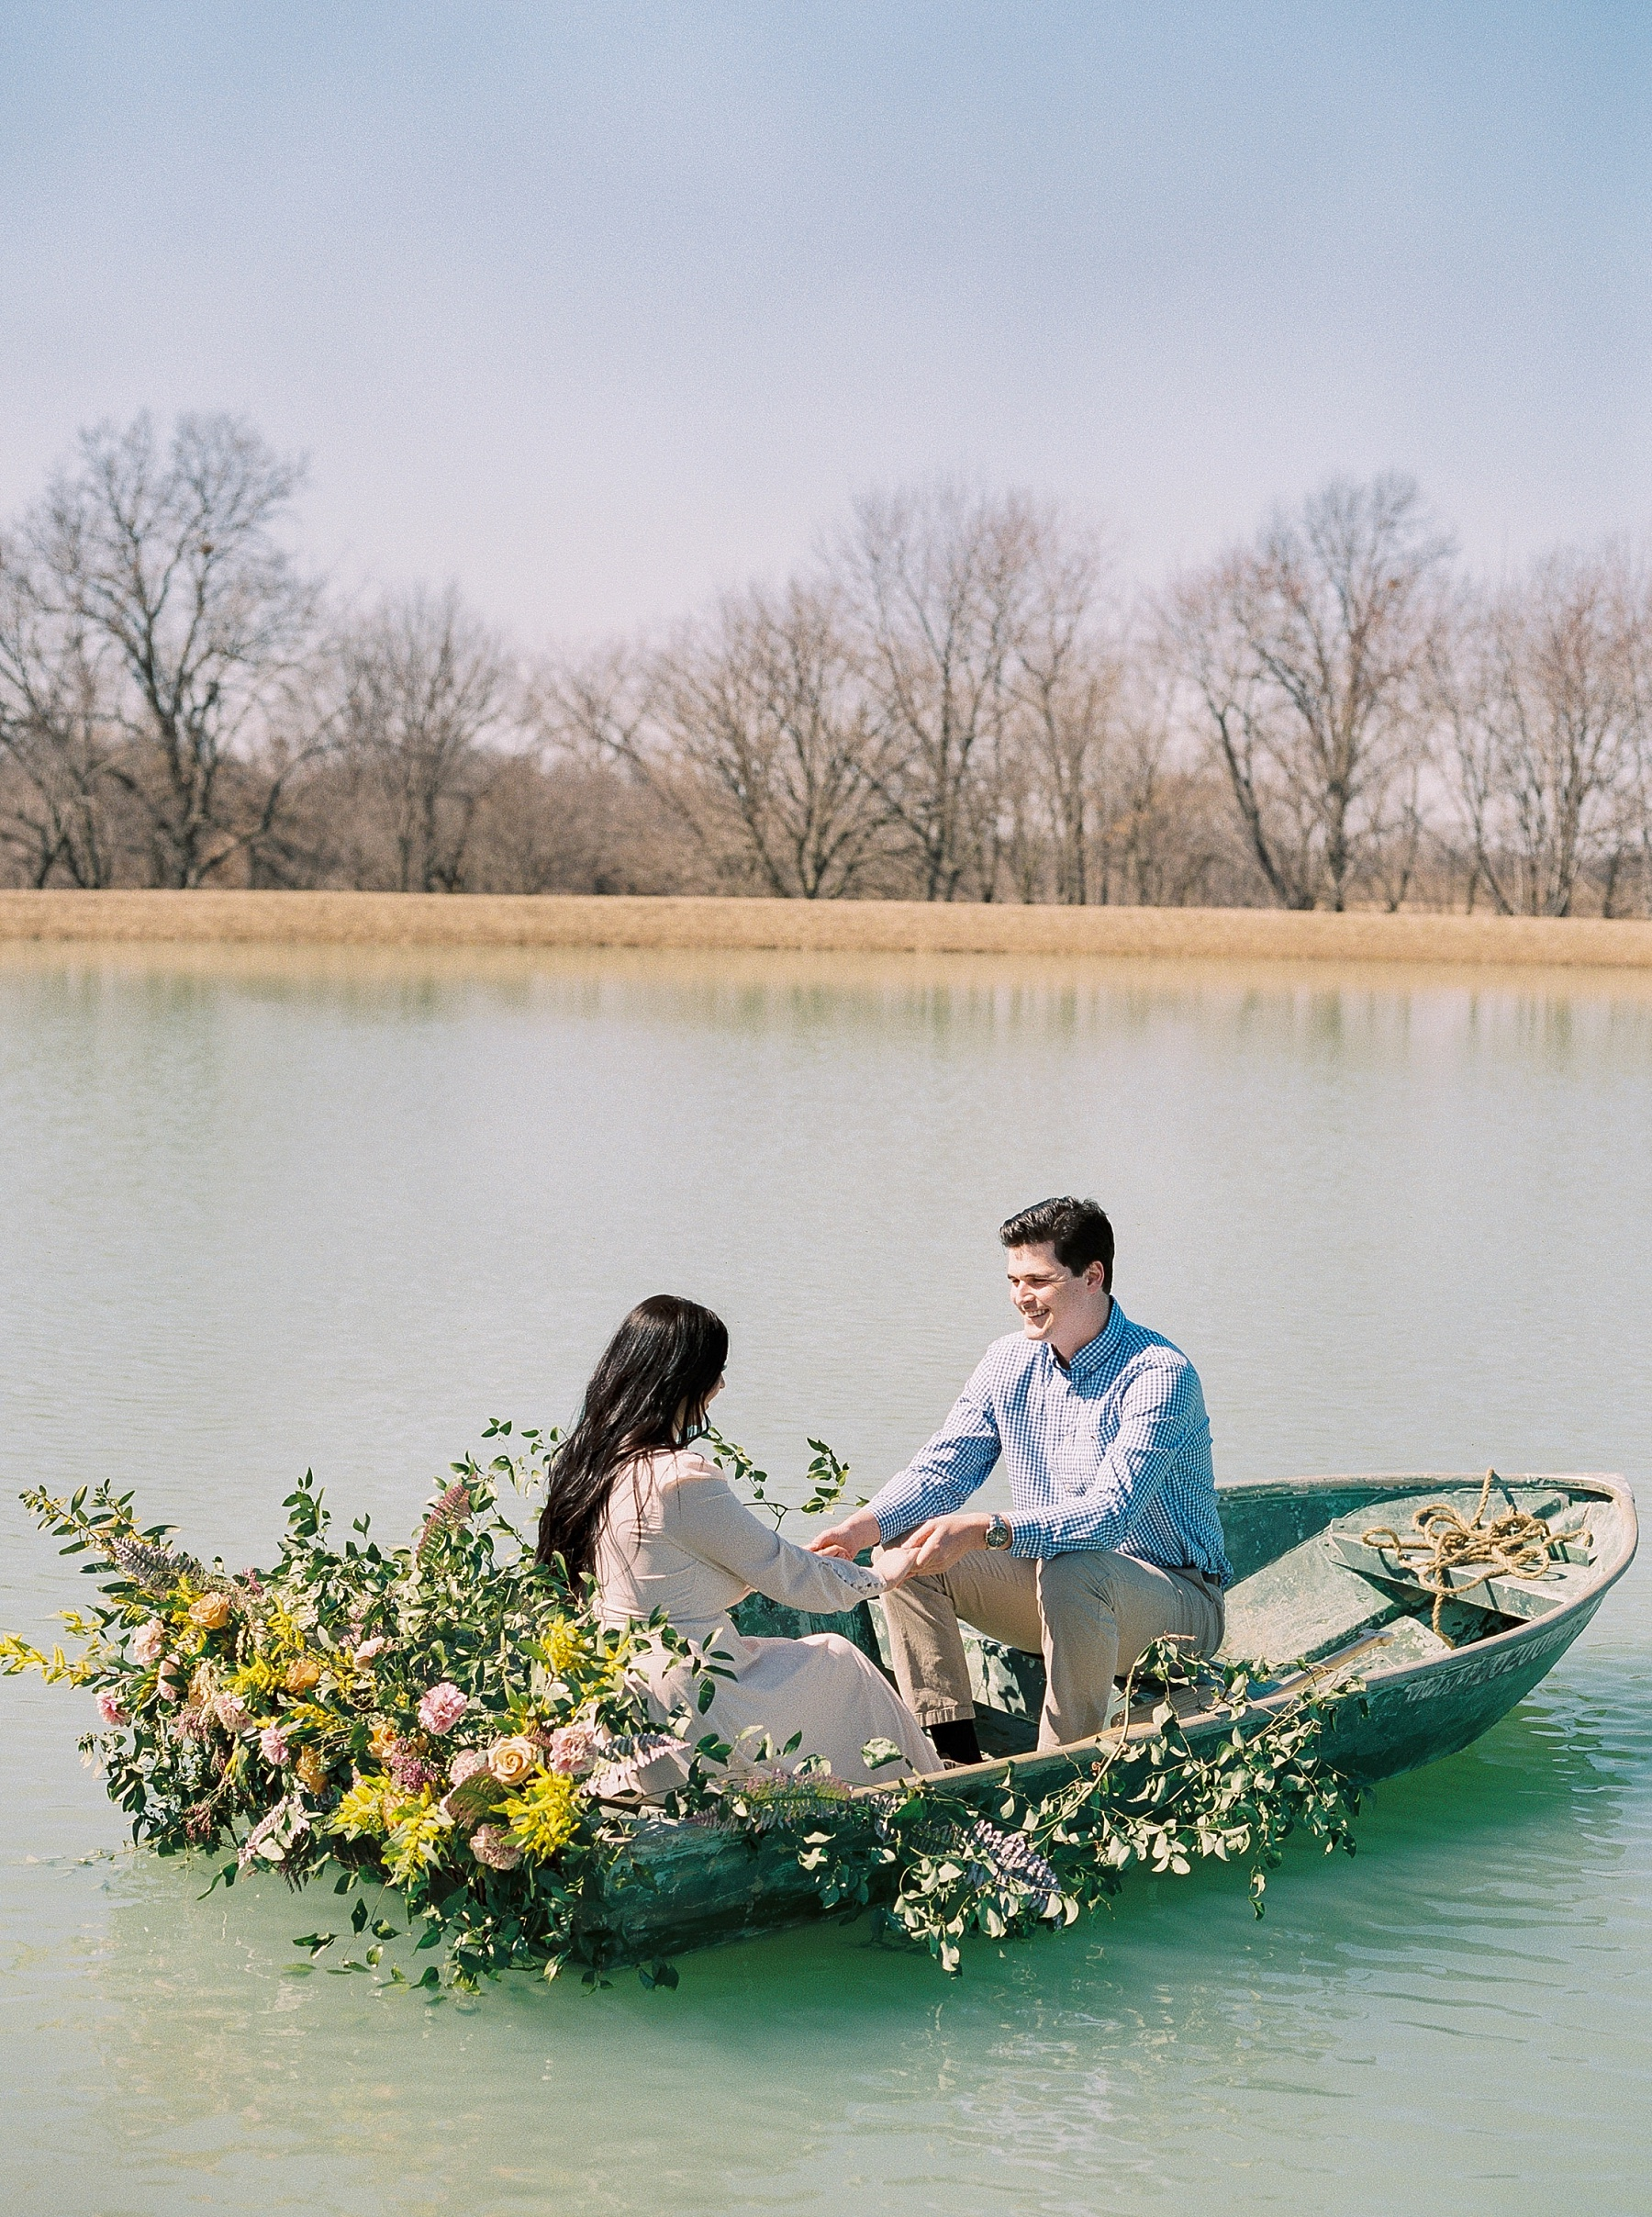 Late Fall Farm-to-table Inspired Brunch Picnic Engagement Session During Wedding Weekend by Kelsi Kliethermes Photography Best Missouri and Maui Wedding Photographer_0025.jpg